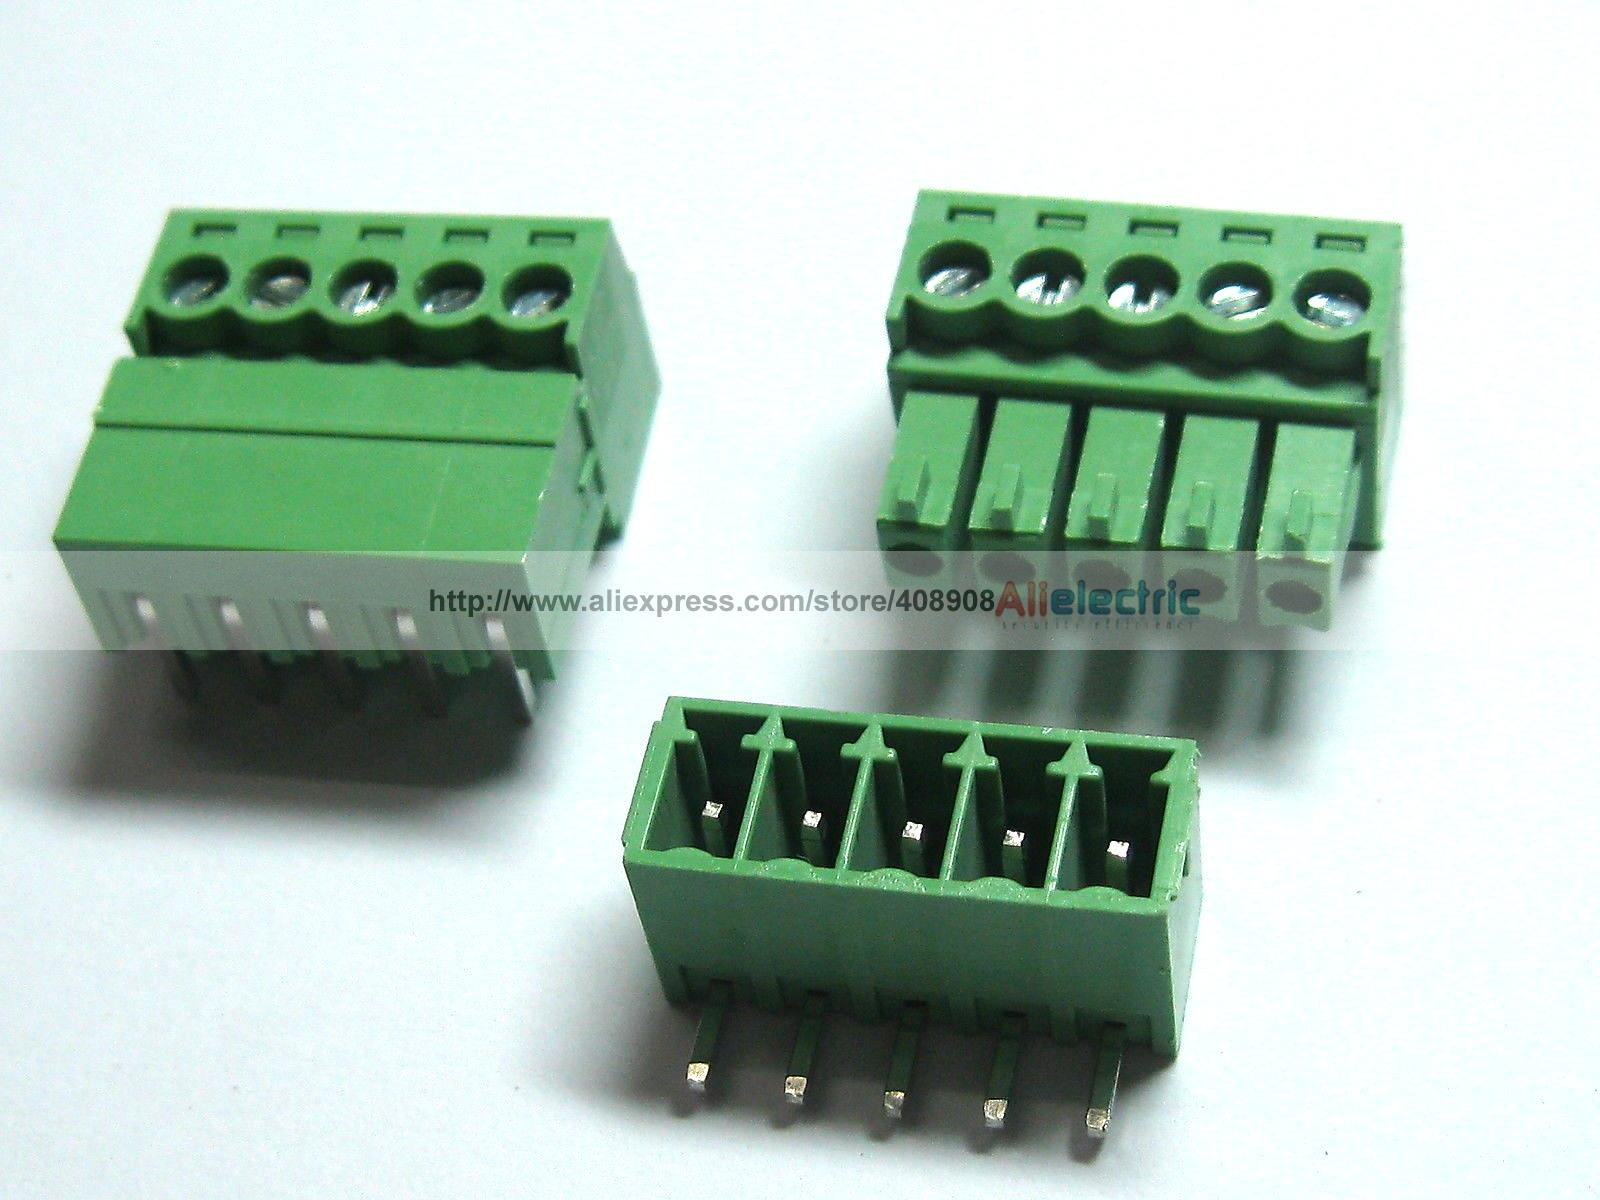 150 Pcs Screw Terminal Block Connector 3.81mm Angle 5 Pin Green Pluggable Type 150 Pcs Screw Terminal Block Connector 3.81mm Angle 5 Pin Green Pluggable Type